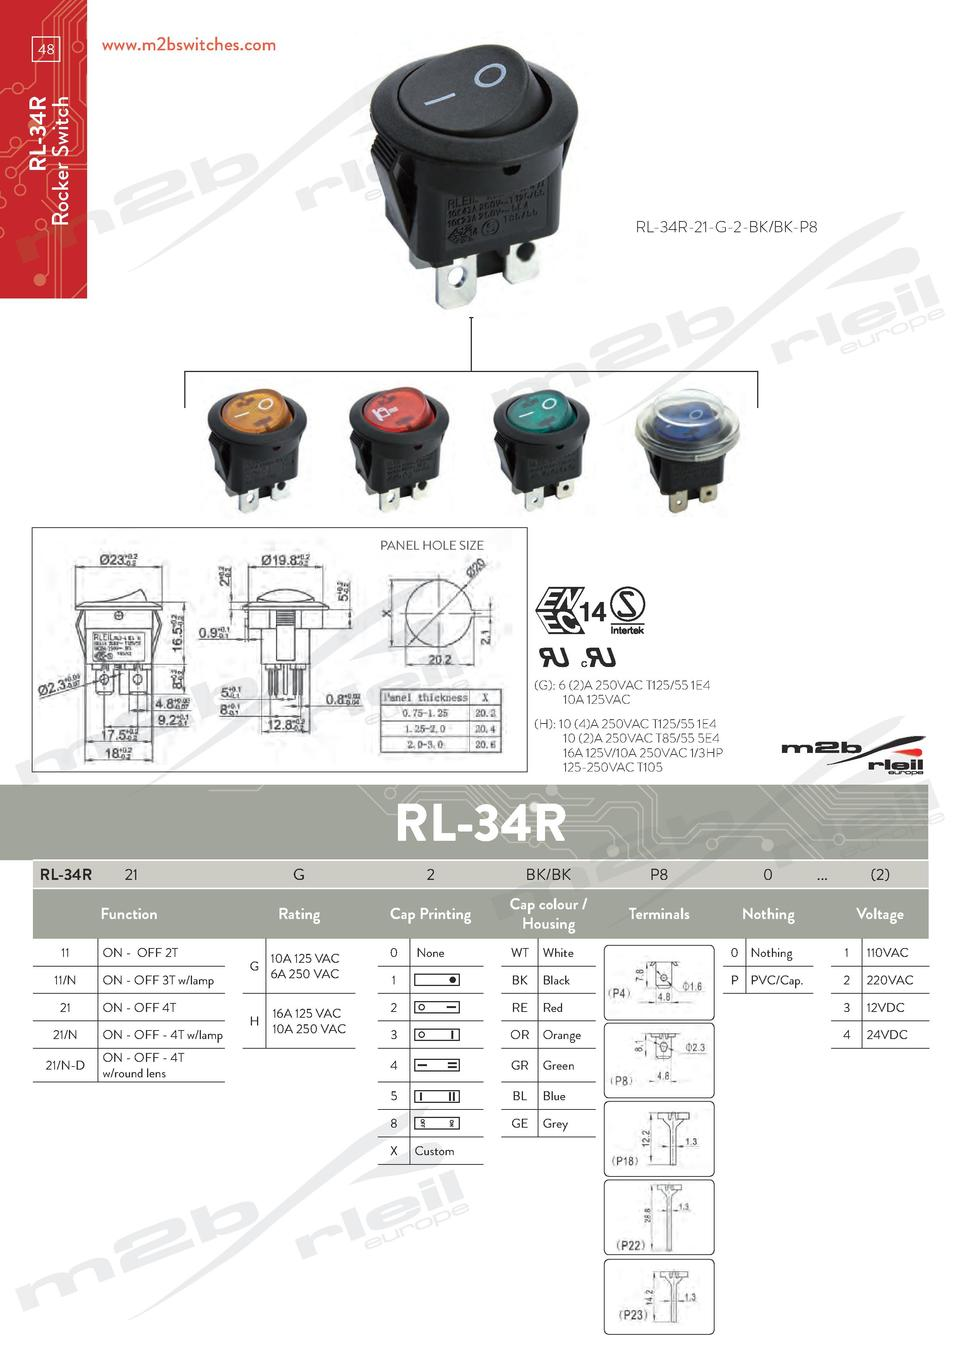 www.m2bswitches.com  RL-34R Rocker Switch  48  RL-34R-21-G-2-BK BK-P8  PANEL HOLE SIZE   G   6  2 A 250VAC T125 55 1E4   1...